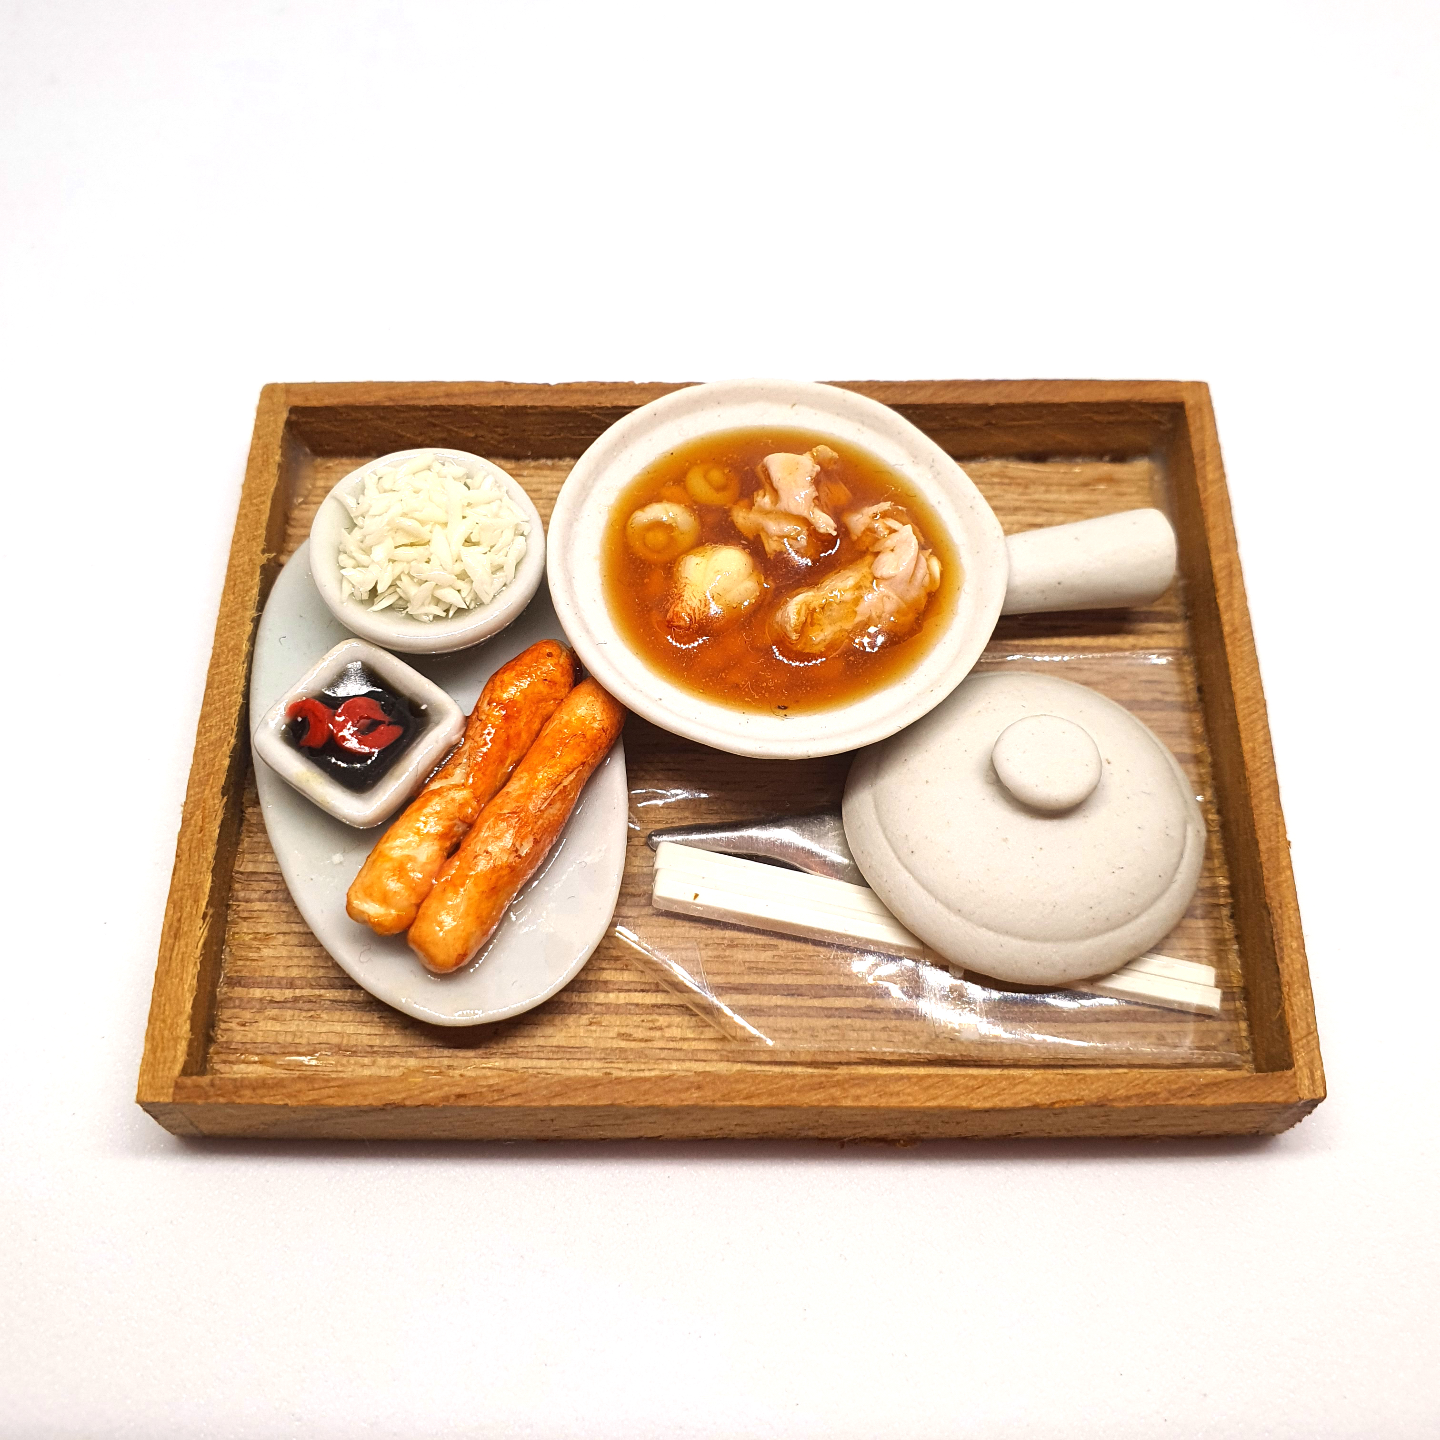 Handmade Miniature: Bak Kut Teh by Madam Ang Miniature World